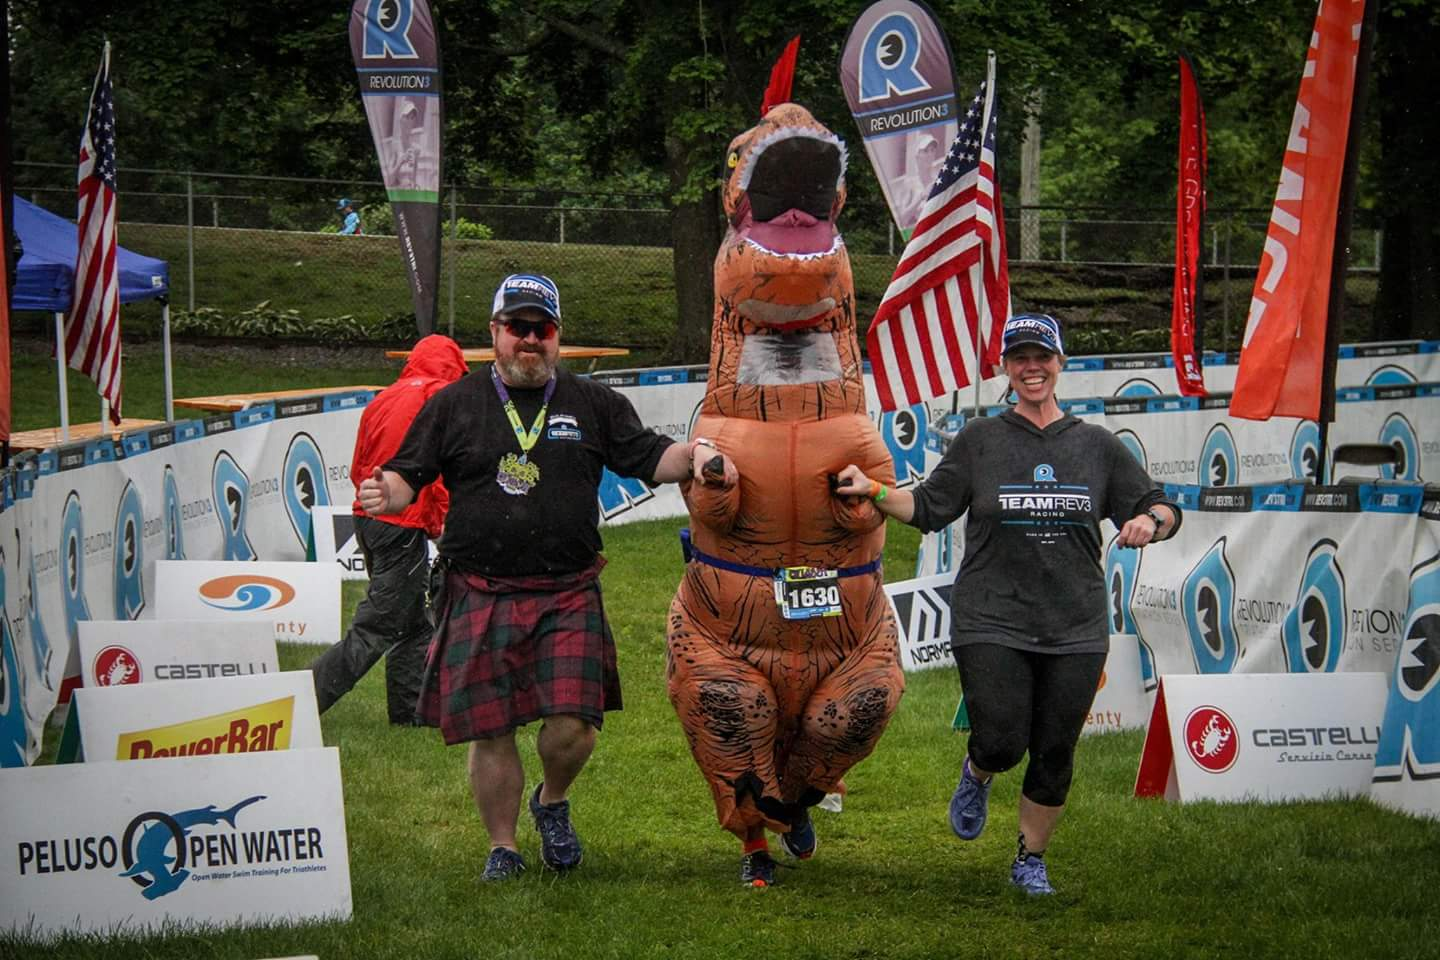 Running with TRex